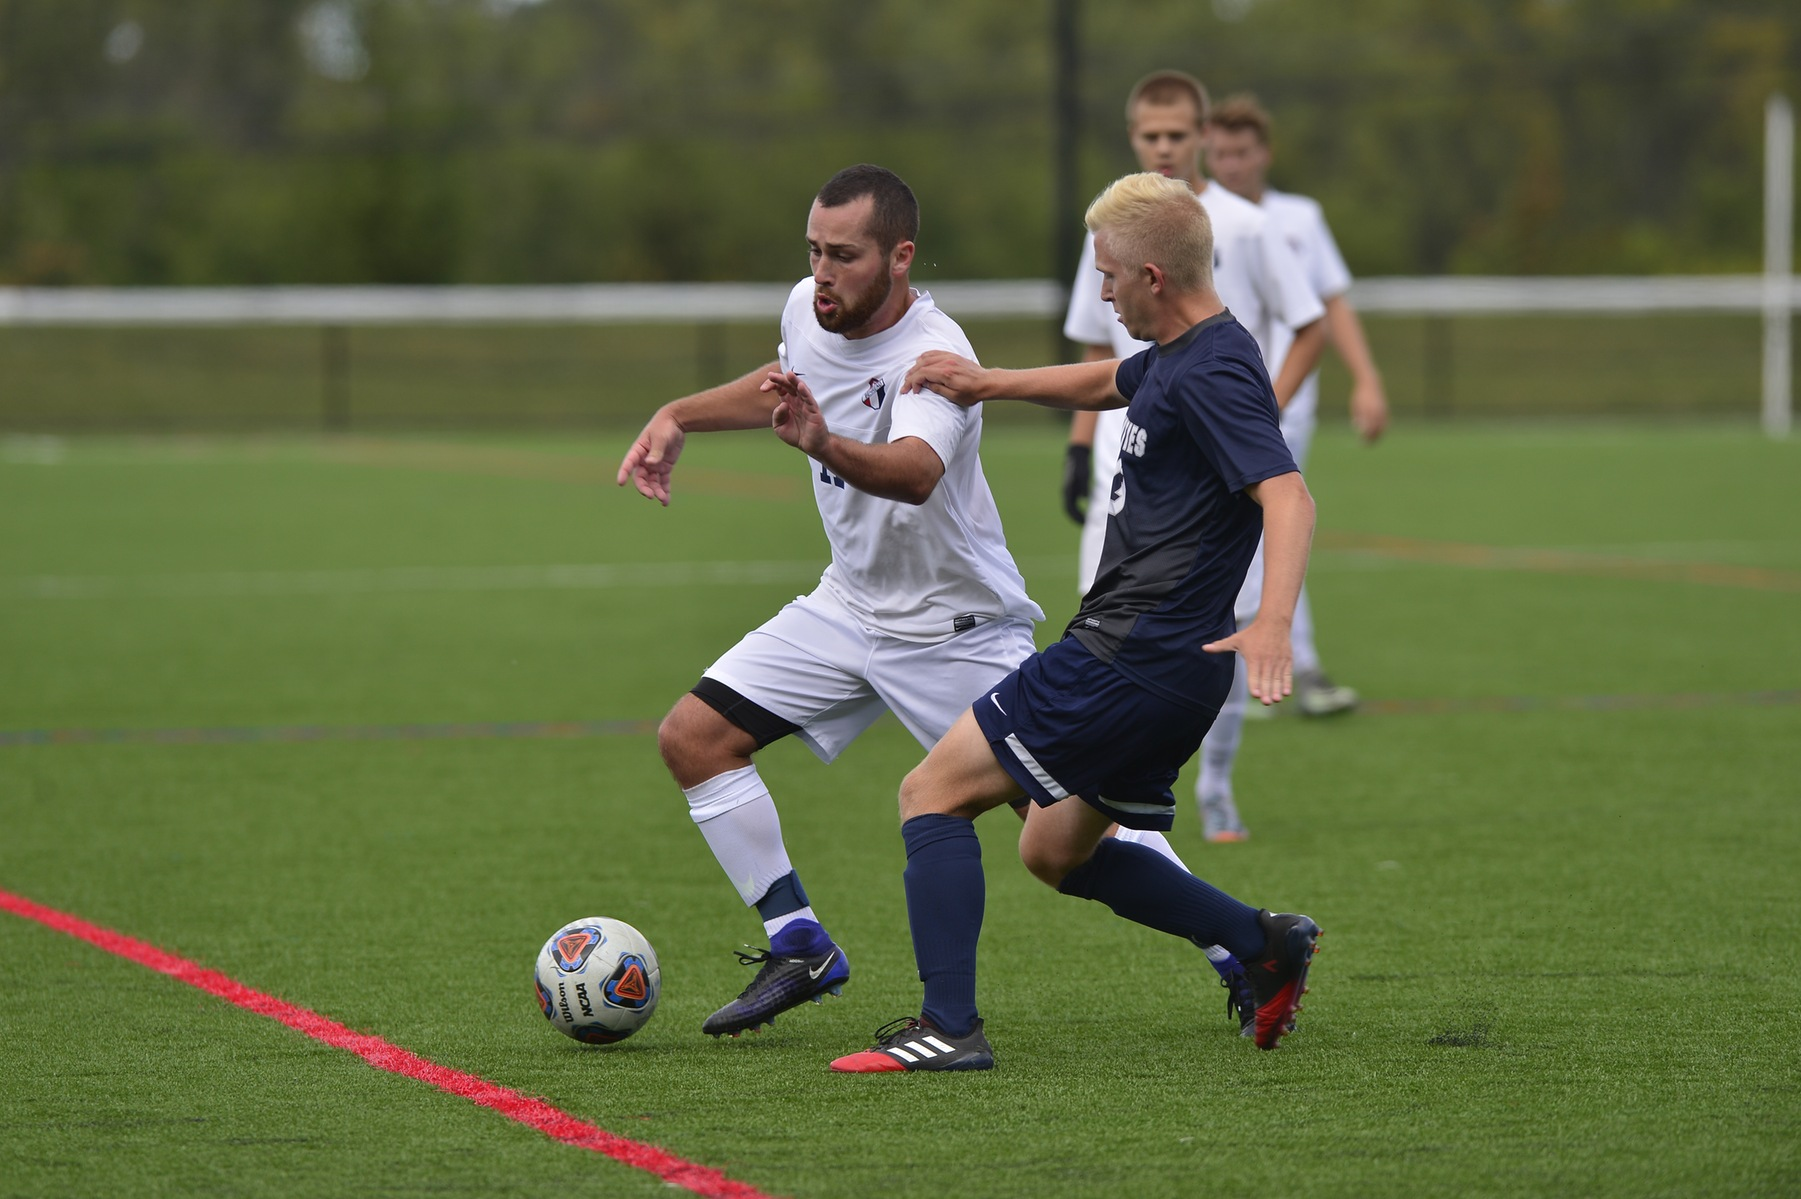 Men's Soccer Advances to ECAC Quarterfinals